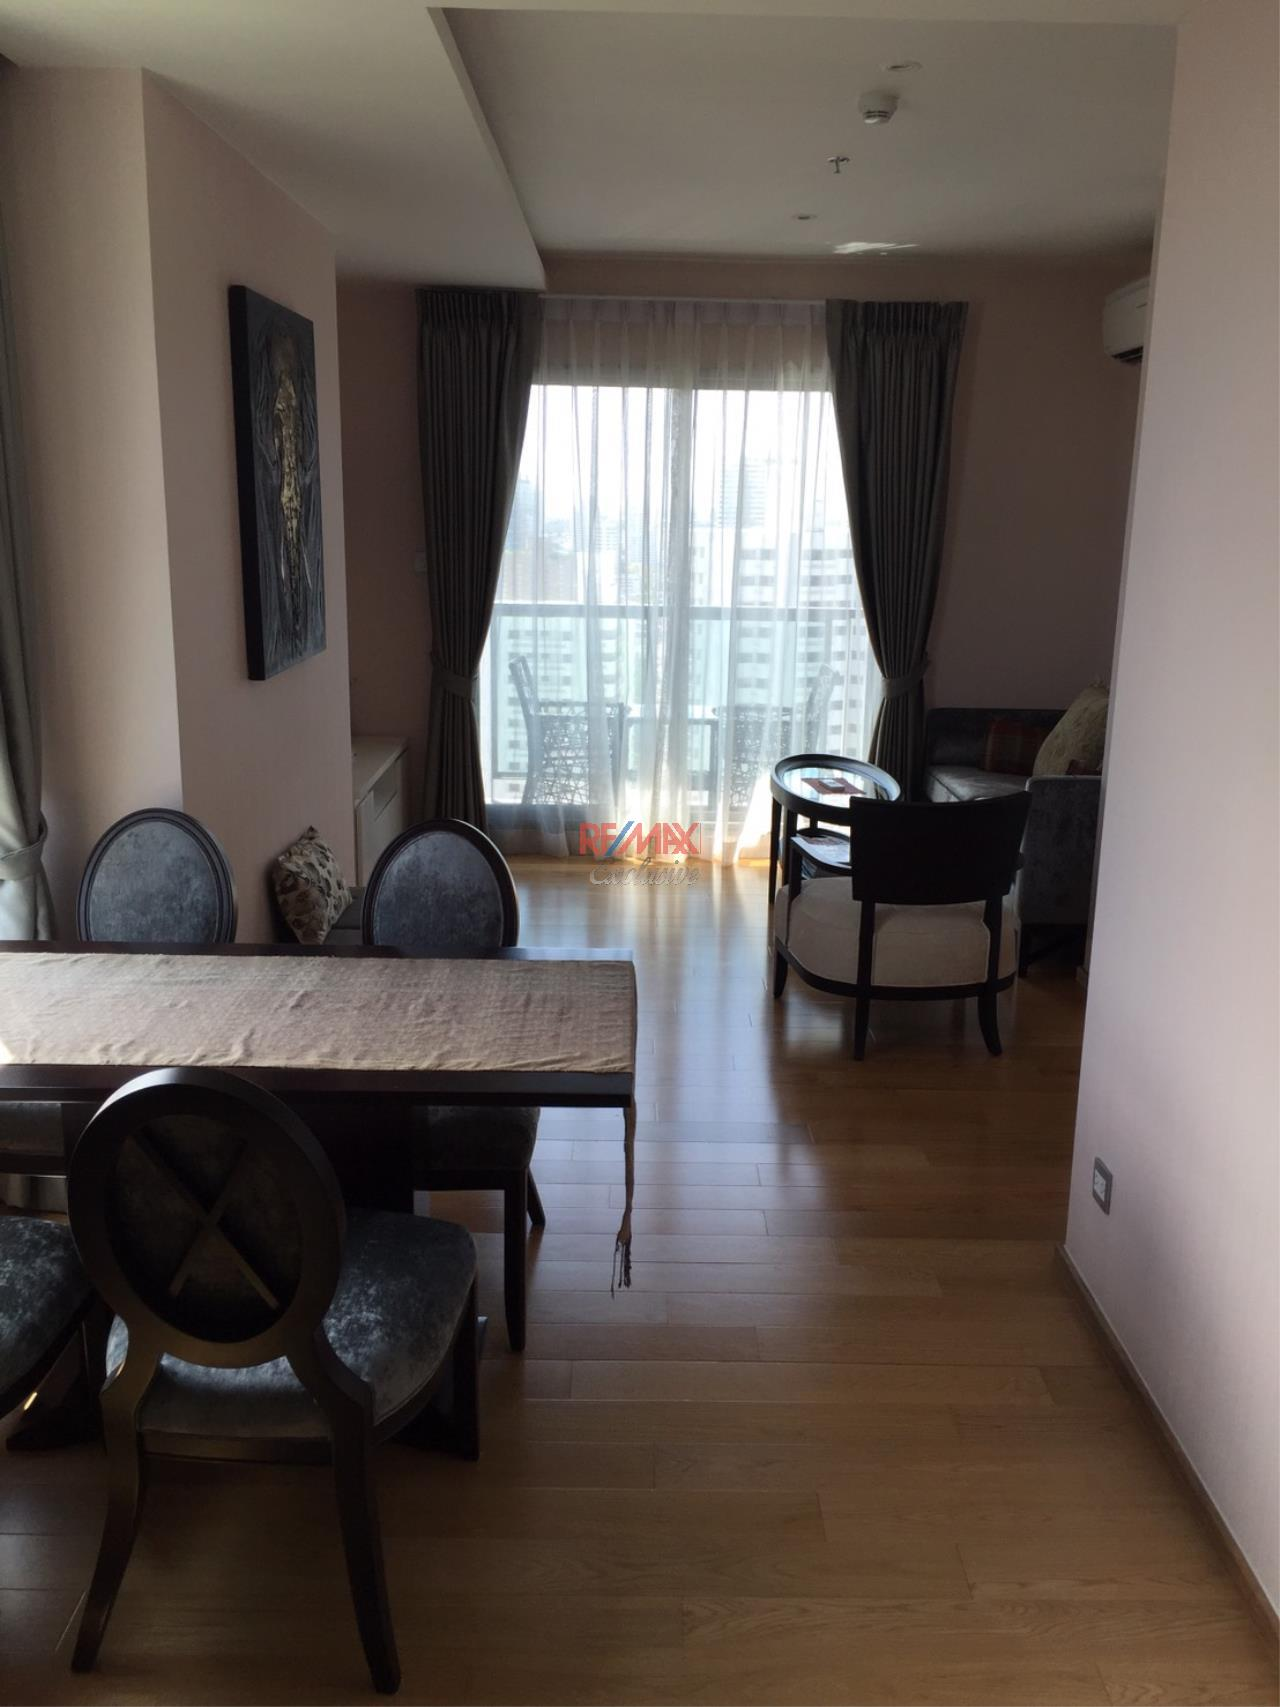 RE/MAX Exclusive Agency's H Sukhumvit 43, 2 Bedroom, 59 Sq.M., Fully-Furnished, High floor - Amazing View! 2